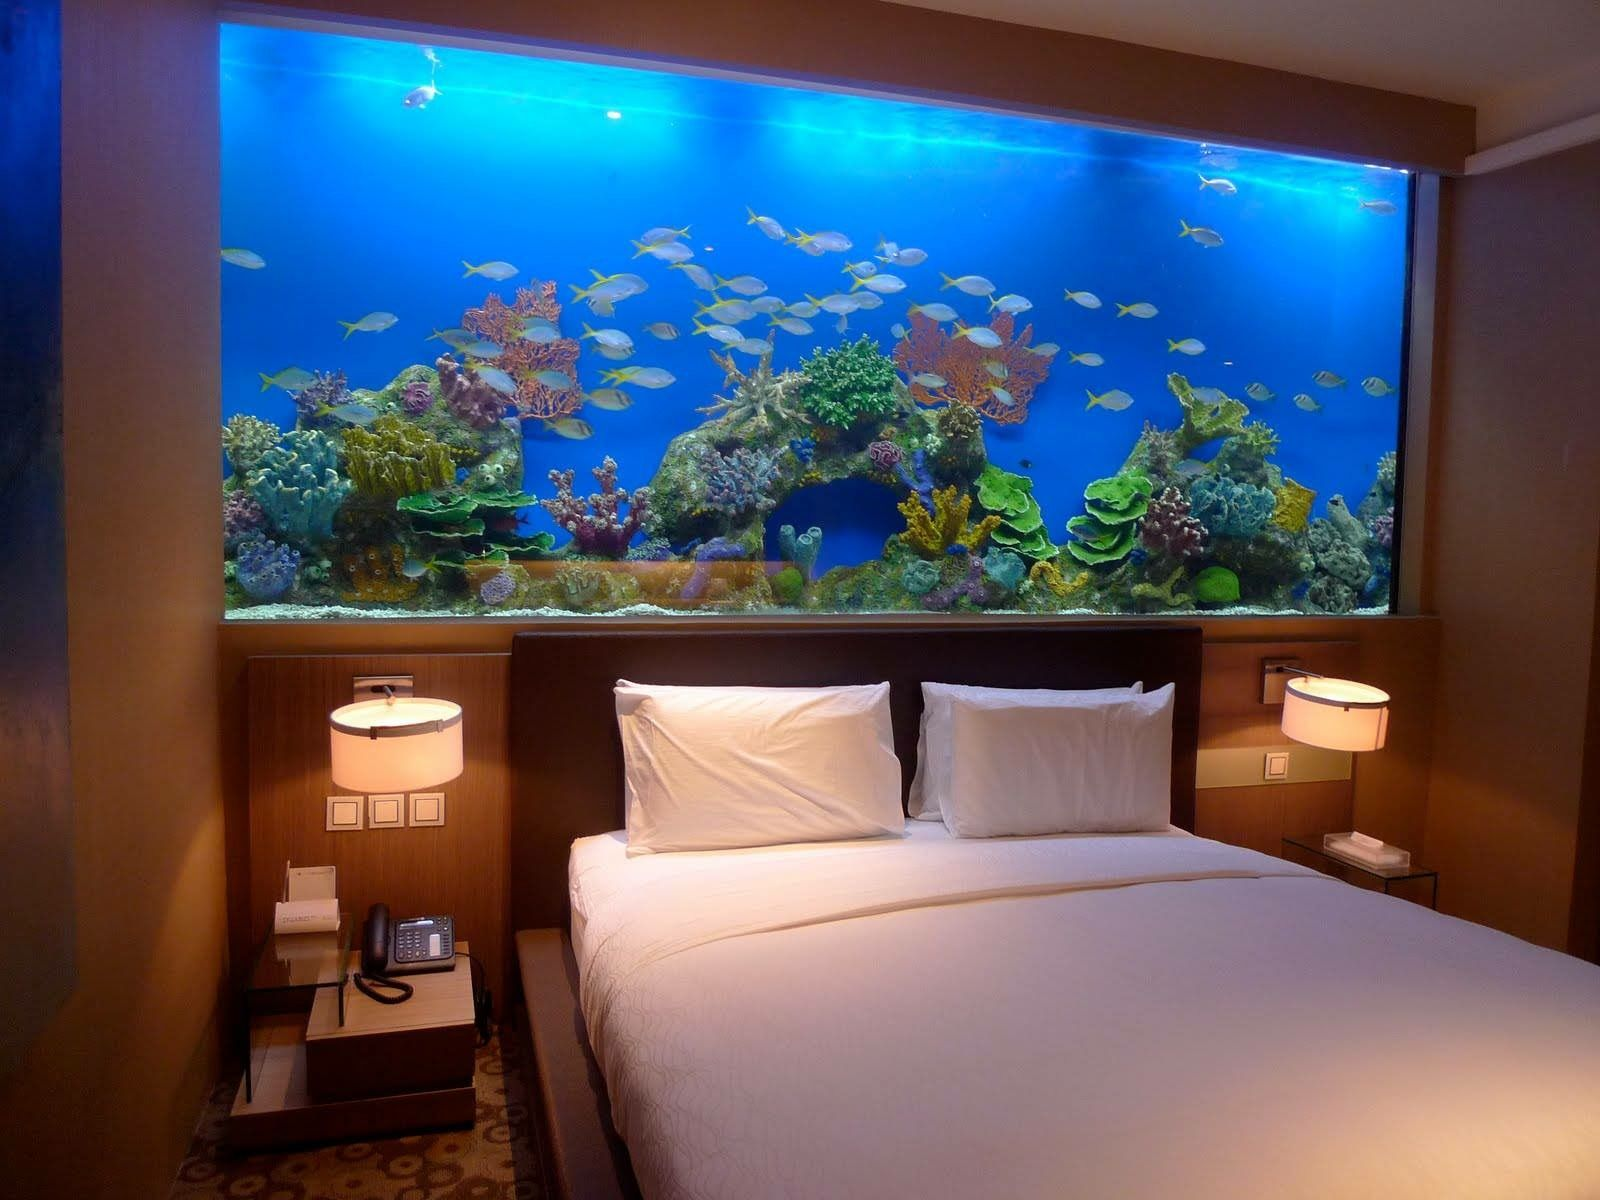 Fish tank bedroom furniture - Fishtank Bed Head Looks Amazing